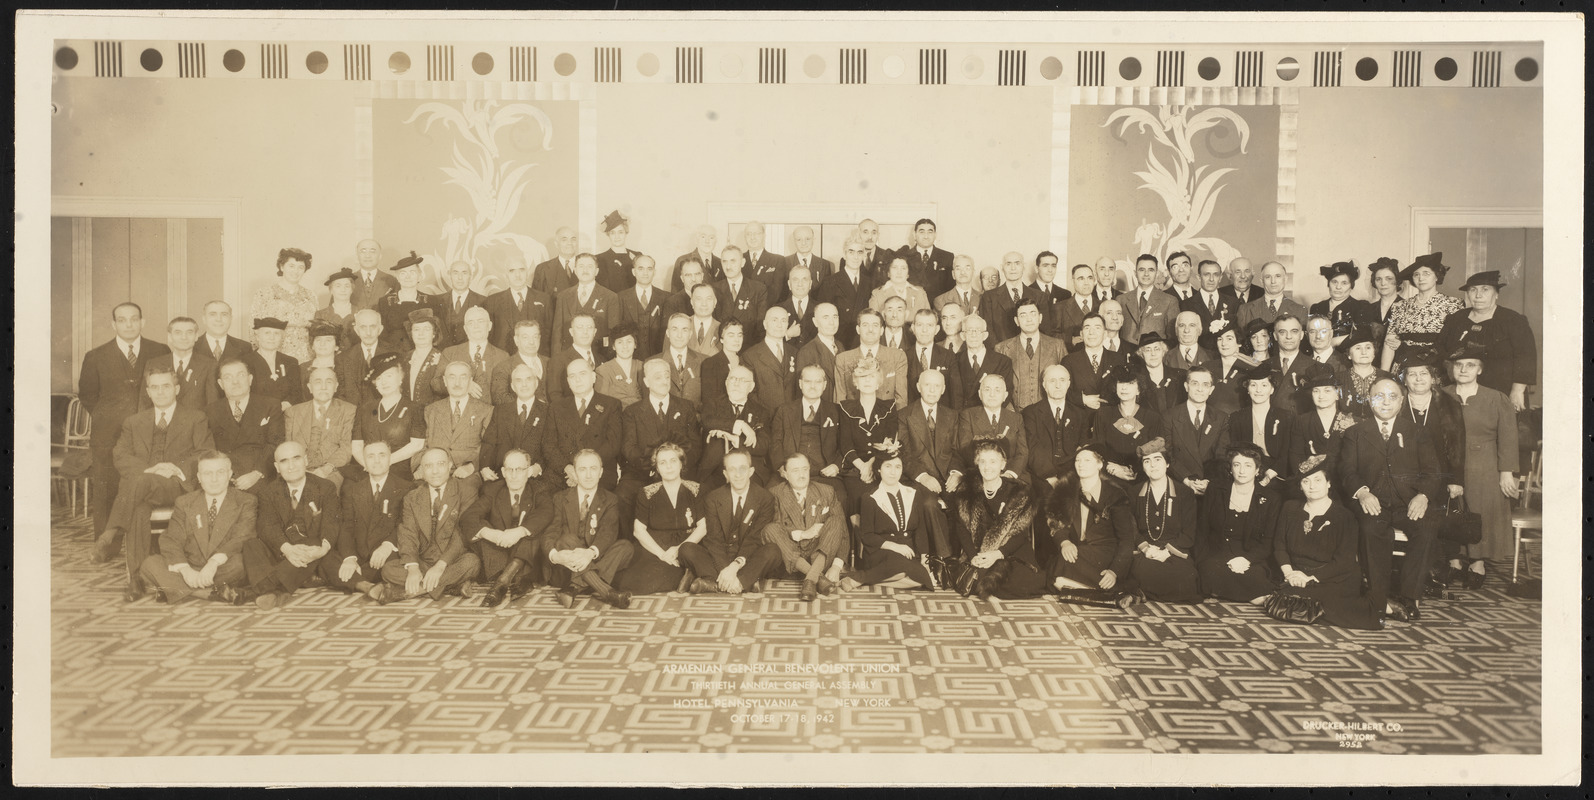 Armenian General Benevolent Union, thirtieth annual general assembly